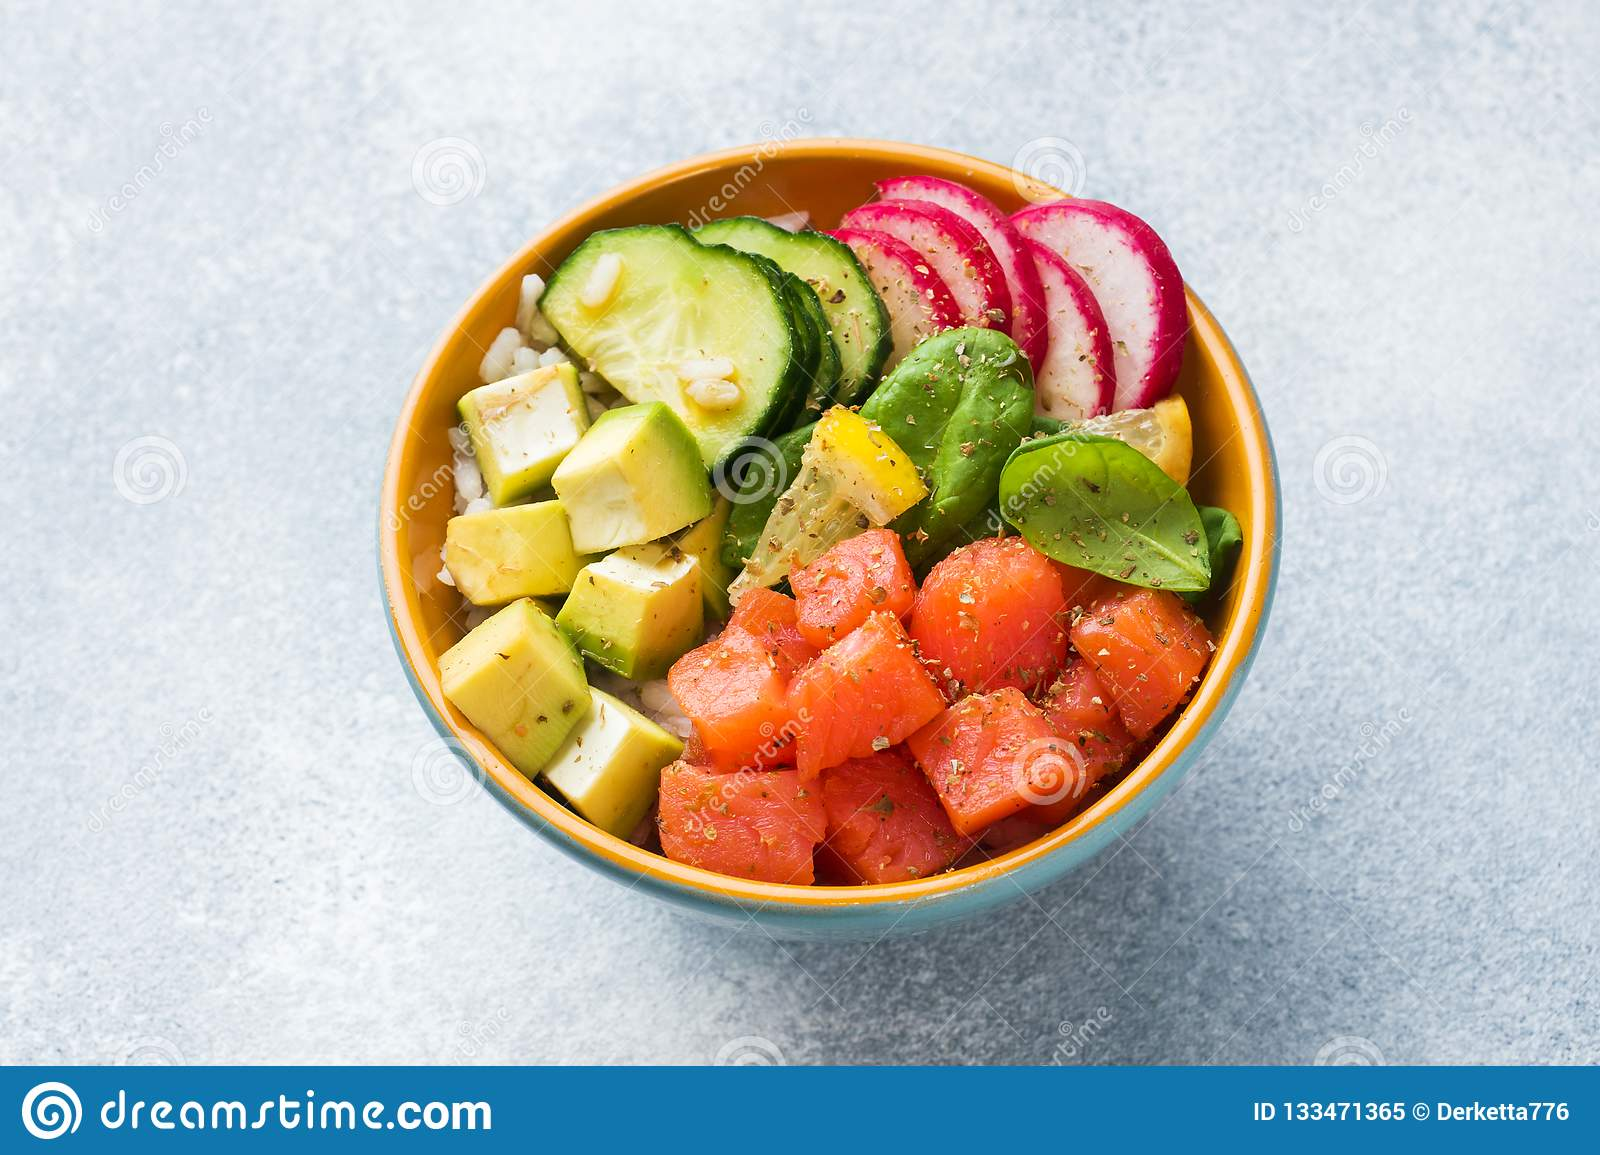 Traditional Hawaiian Poke Salad With Salmon Avocado Rice And Vegetables In A Bowl